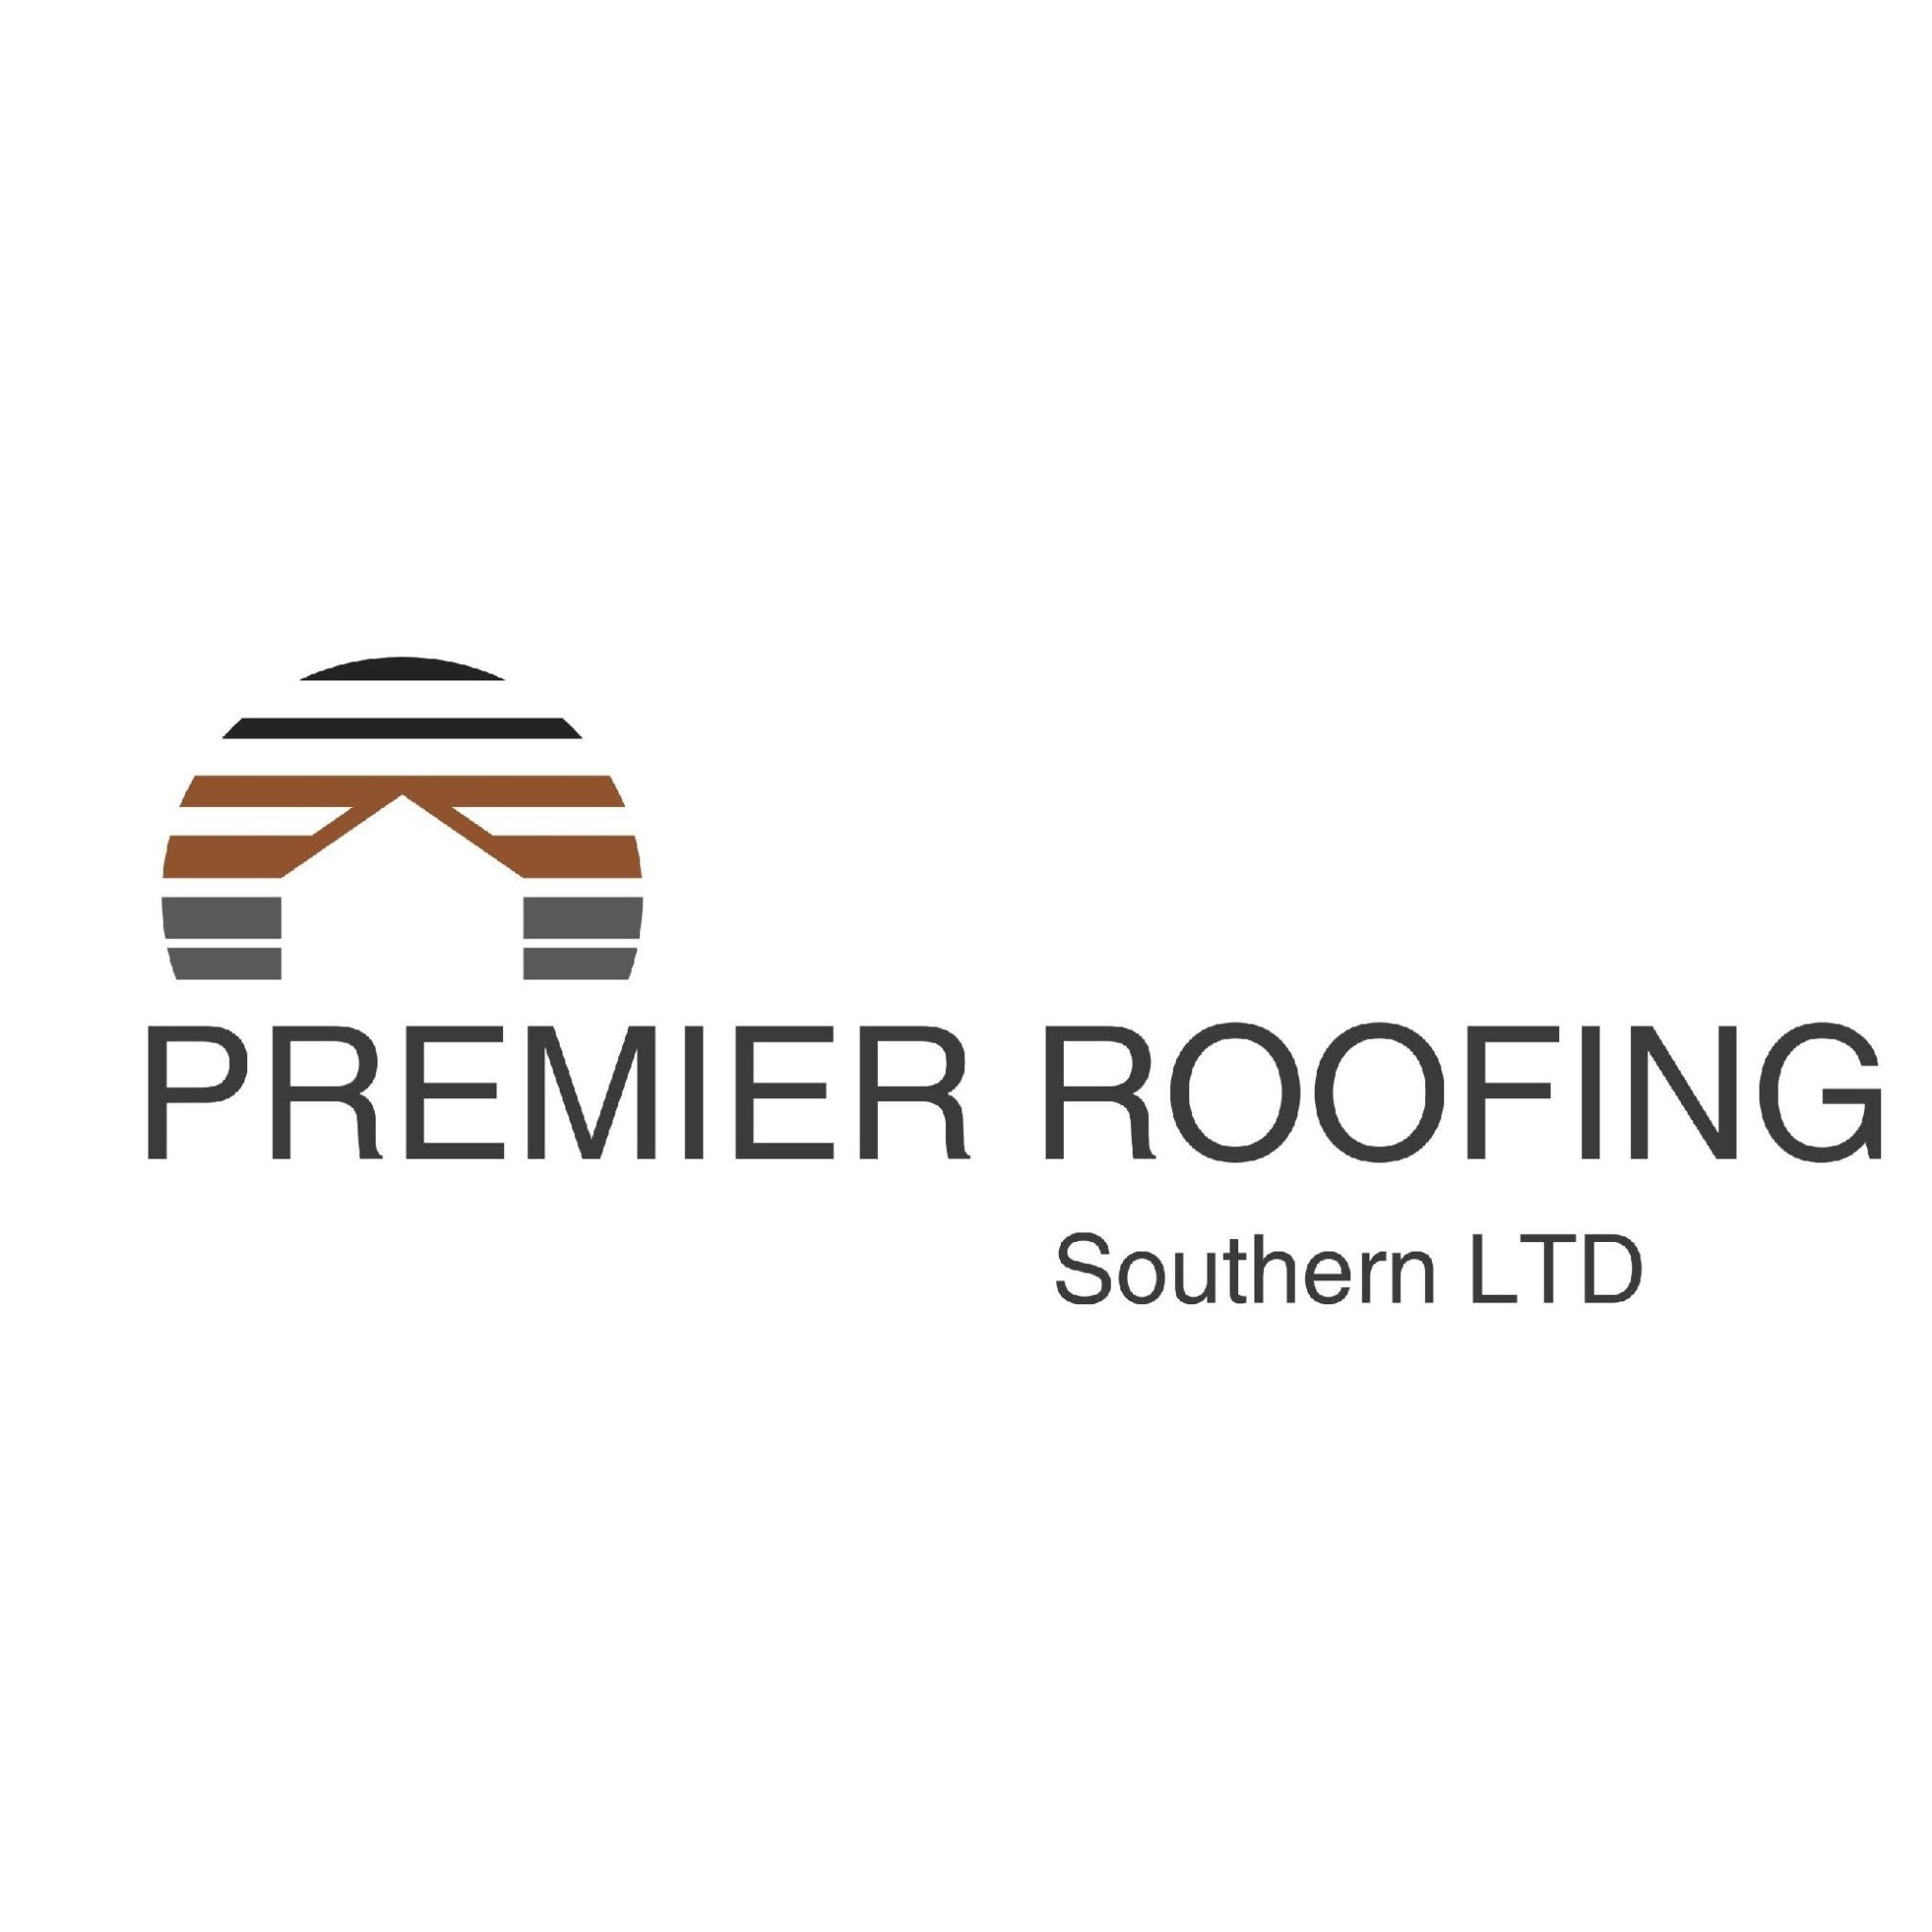 Premier Roofing Southern Ltd - Southampton, Hampshire SO15 5NR - 02380 308027 | ShowMeLocal.com